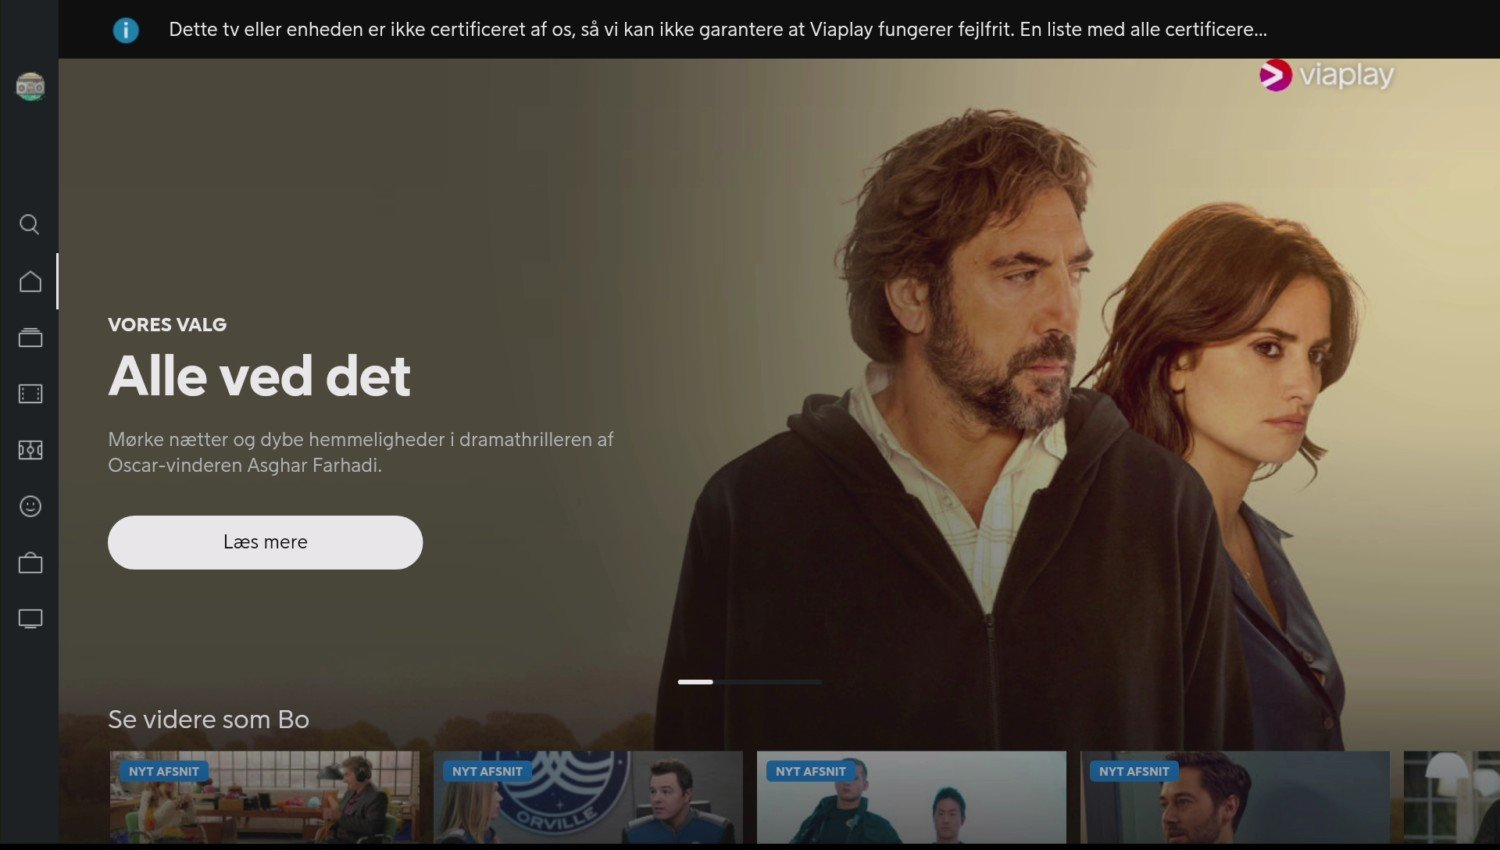 Viaplay Android TV ikke certificeret